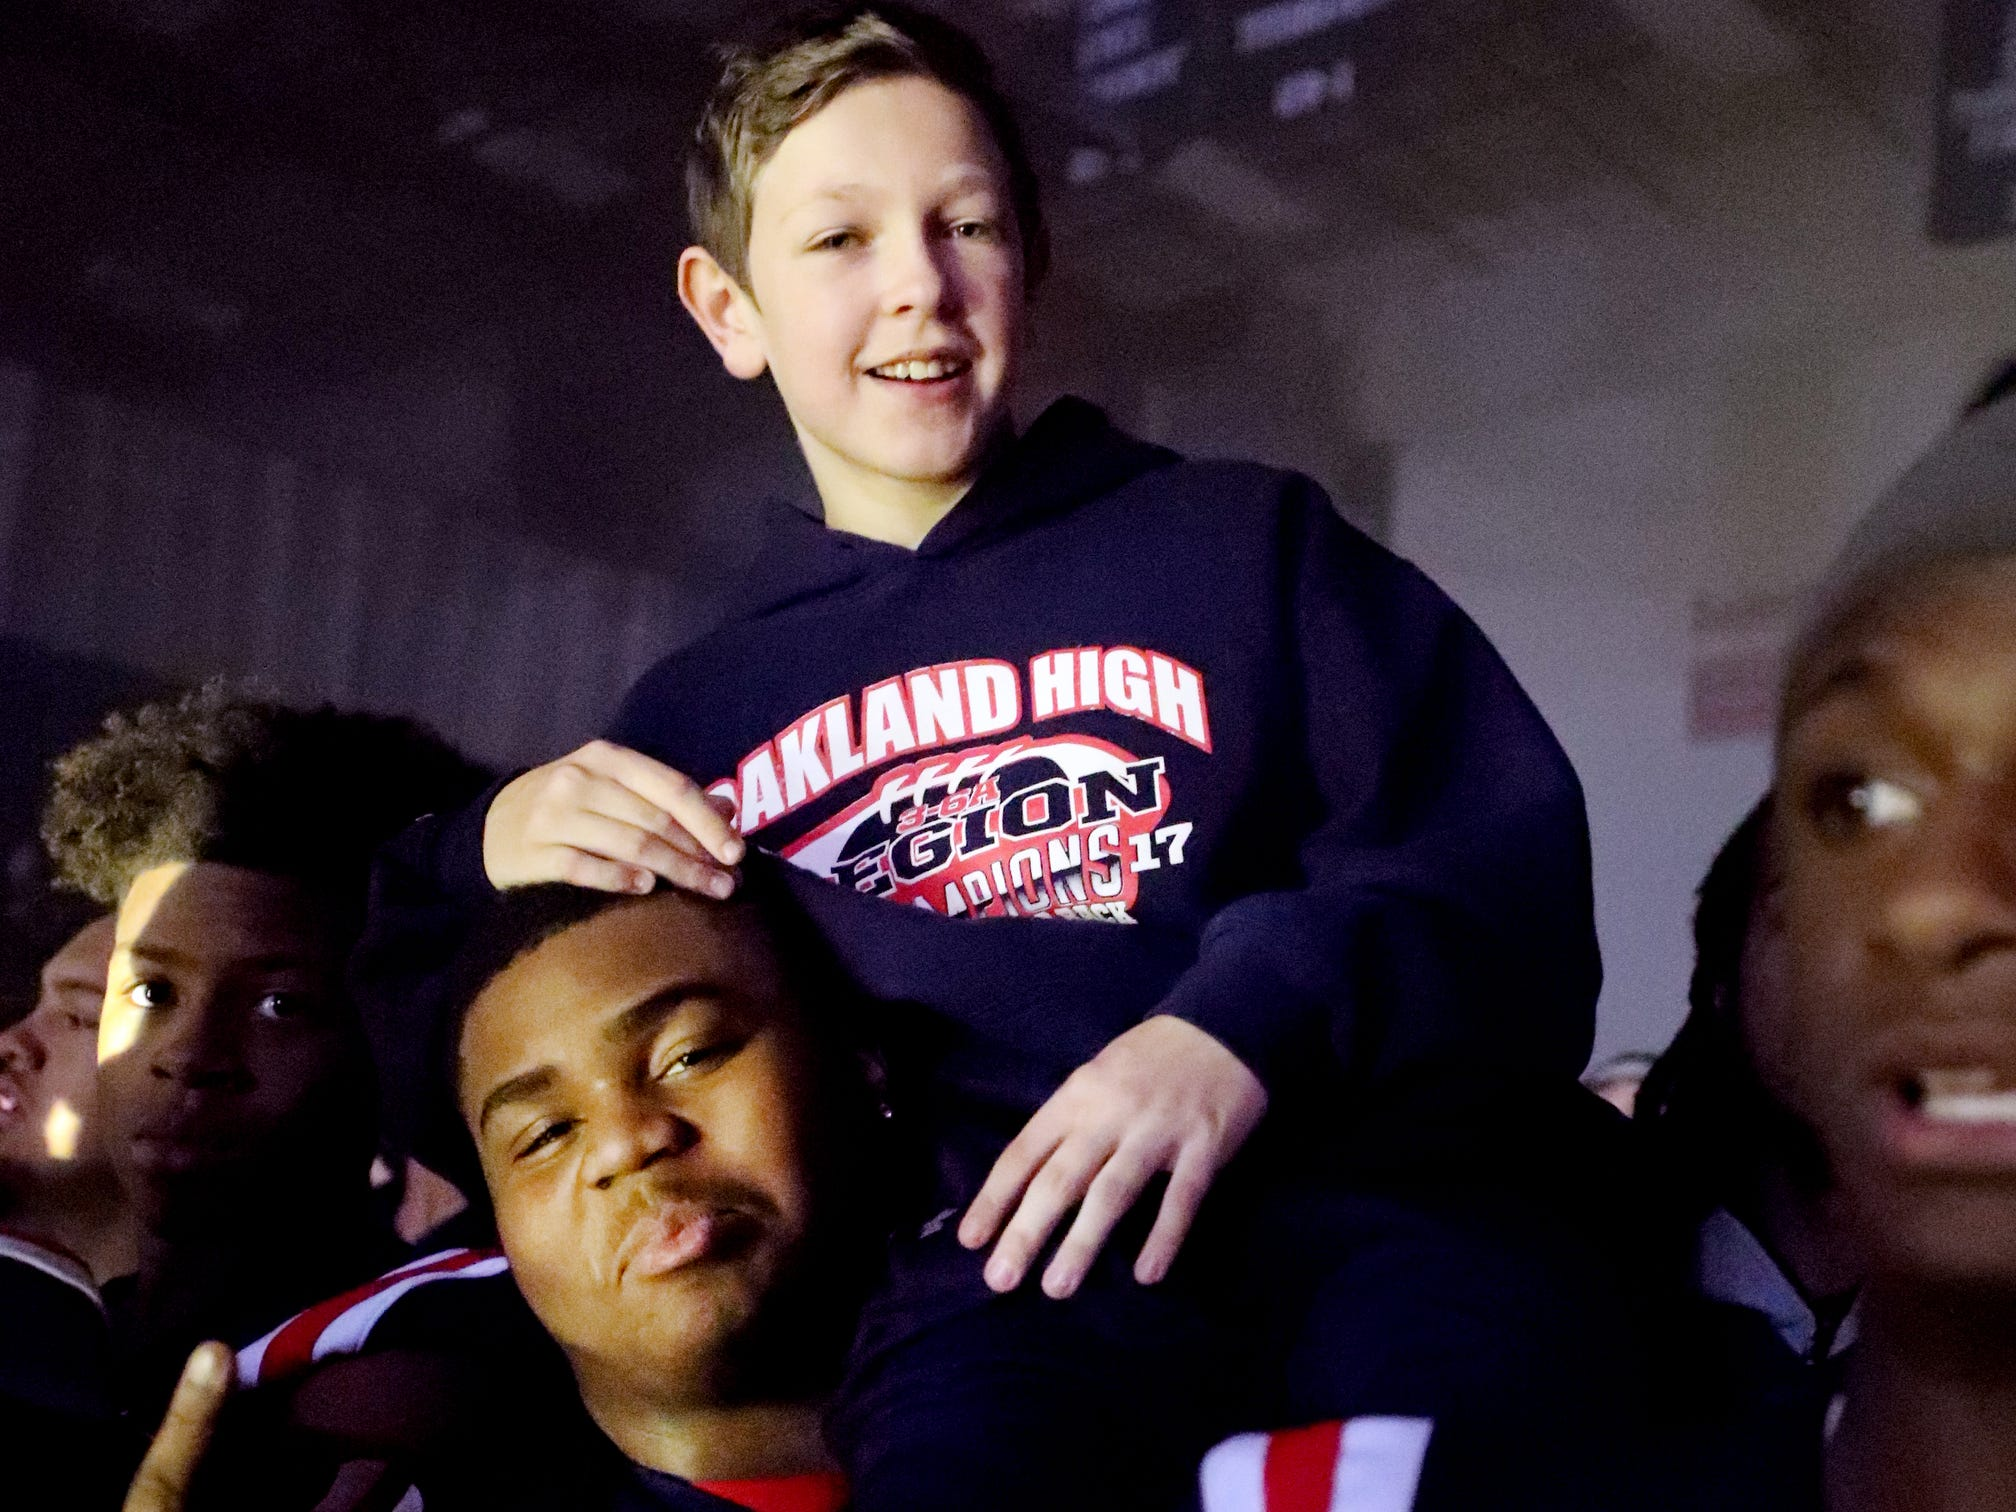 Oakland High School's  Kylan Spencer (99) holds Kyler Creasy, the son of Oakland head coach Kevin Creasy during a pep rally, on Monday, Dec. 3, 2018 at the school after the football team won the 6A State Championship BlueCross Bowl game against Westhaven on Thursday.